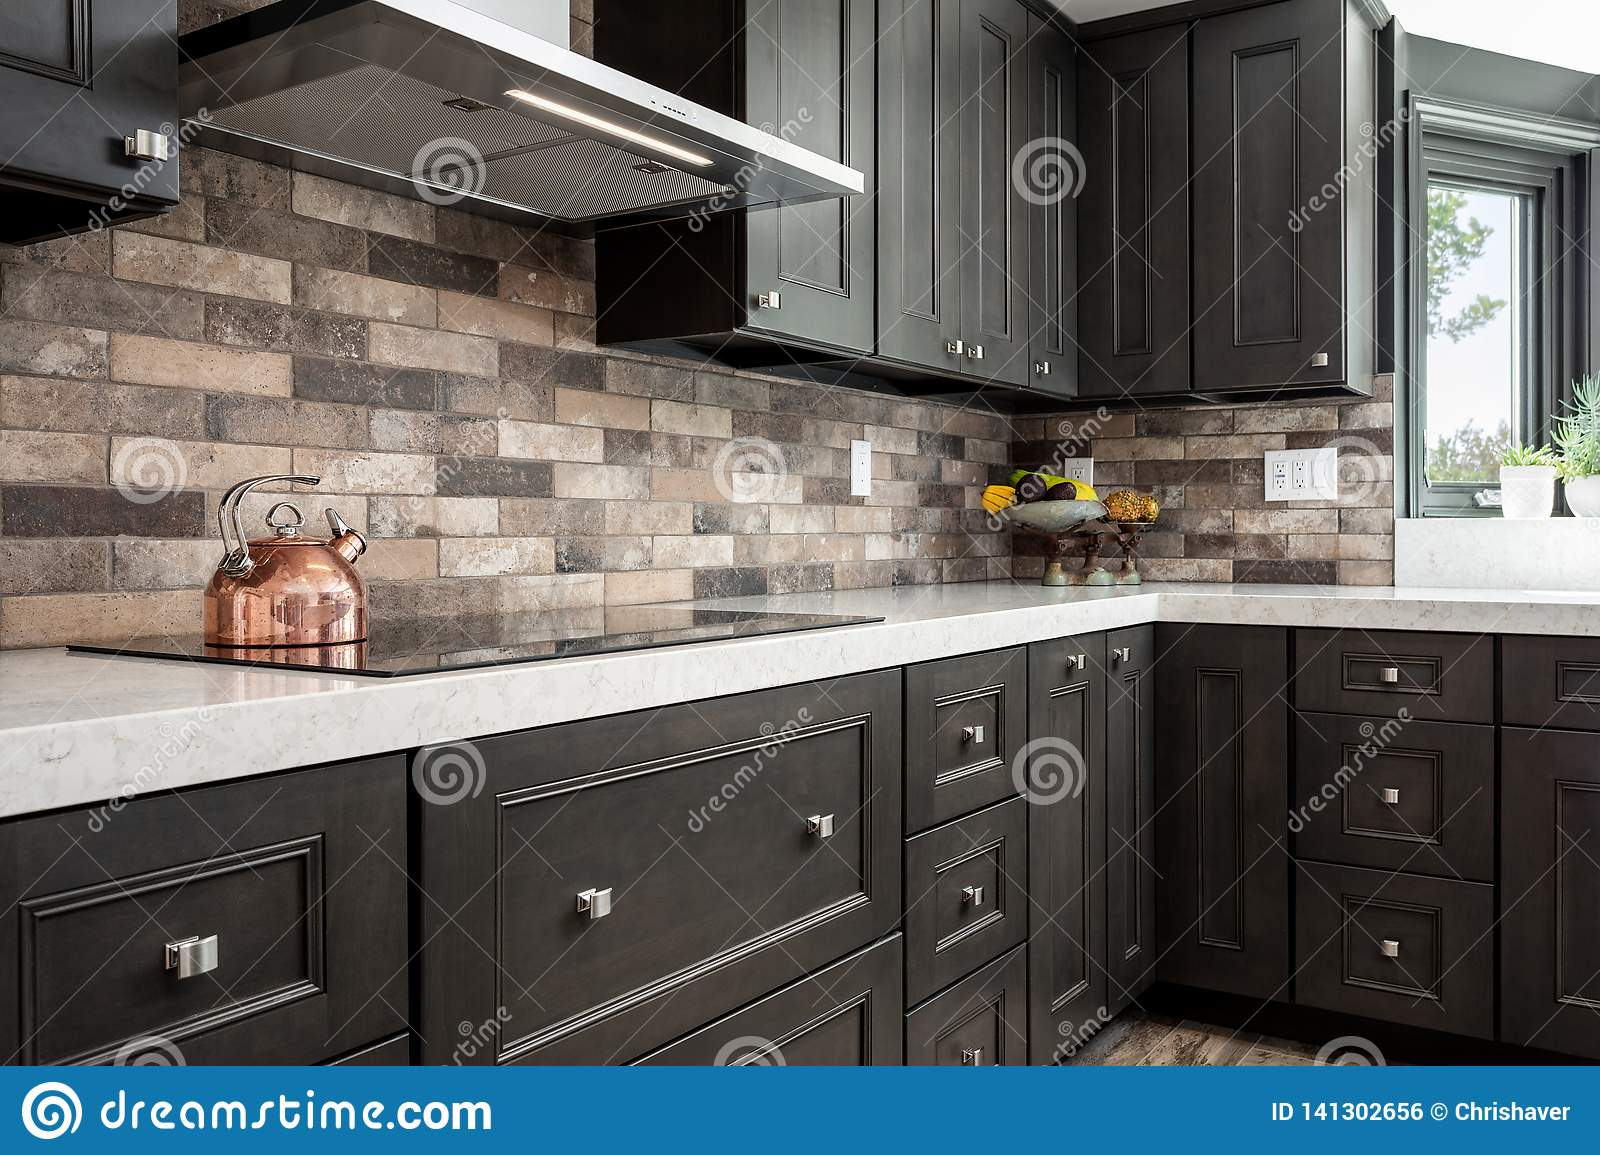 Home Design Remodel Dark Kitchen Cabinets With Stone Back ... on stone backsplashes in kitchens, countertops for kitchen with dark cabinets, gray subway tile kitchen floor white cabinets, stone tile kitchen backsplash ideas, tile backsplash for kitchens with oak cabinets, best kitchen colors with dark cabinets, small galley kitchen with dark cabinets, glass tile backsplash white kitchen cabinets, kitchen backsplash tiles with cherry cabinets, kitchen backsplash ideas with walnut cabinets,